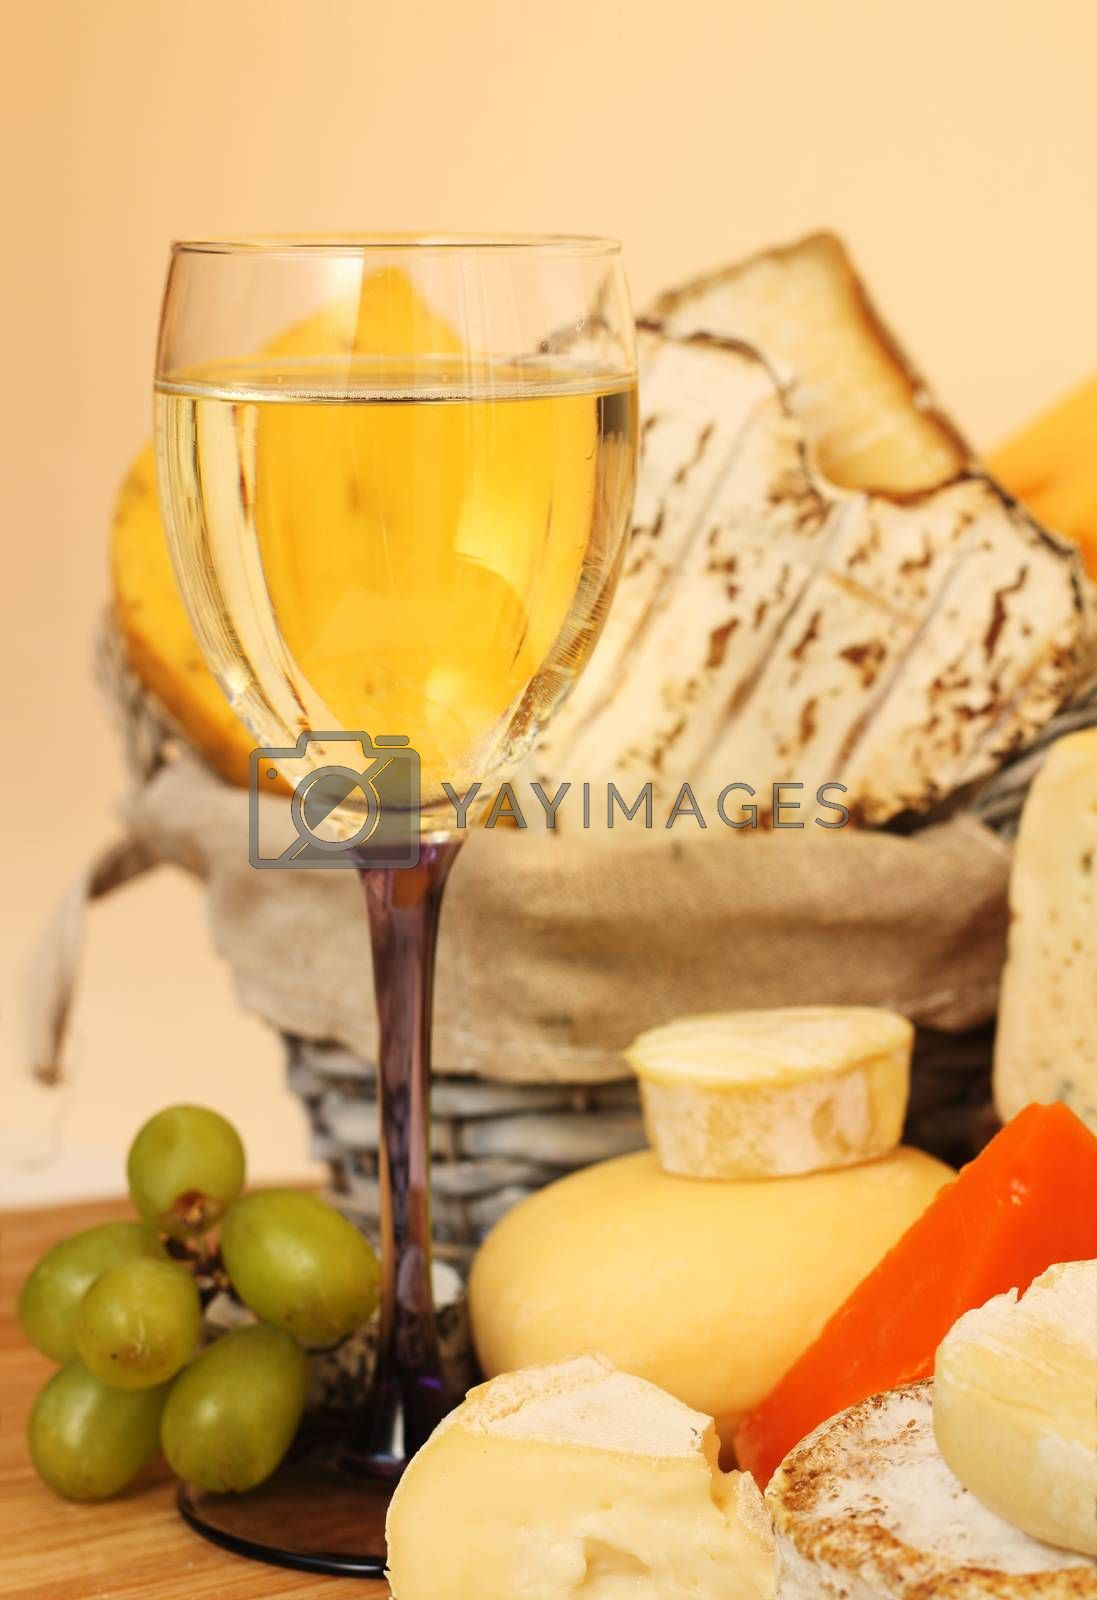 Royalty free image of Cheese and wine by destillat